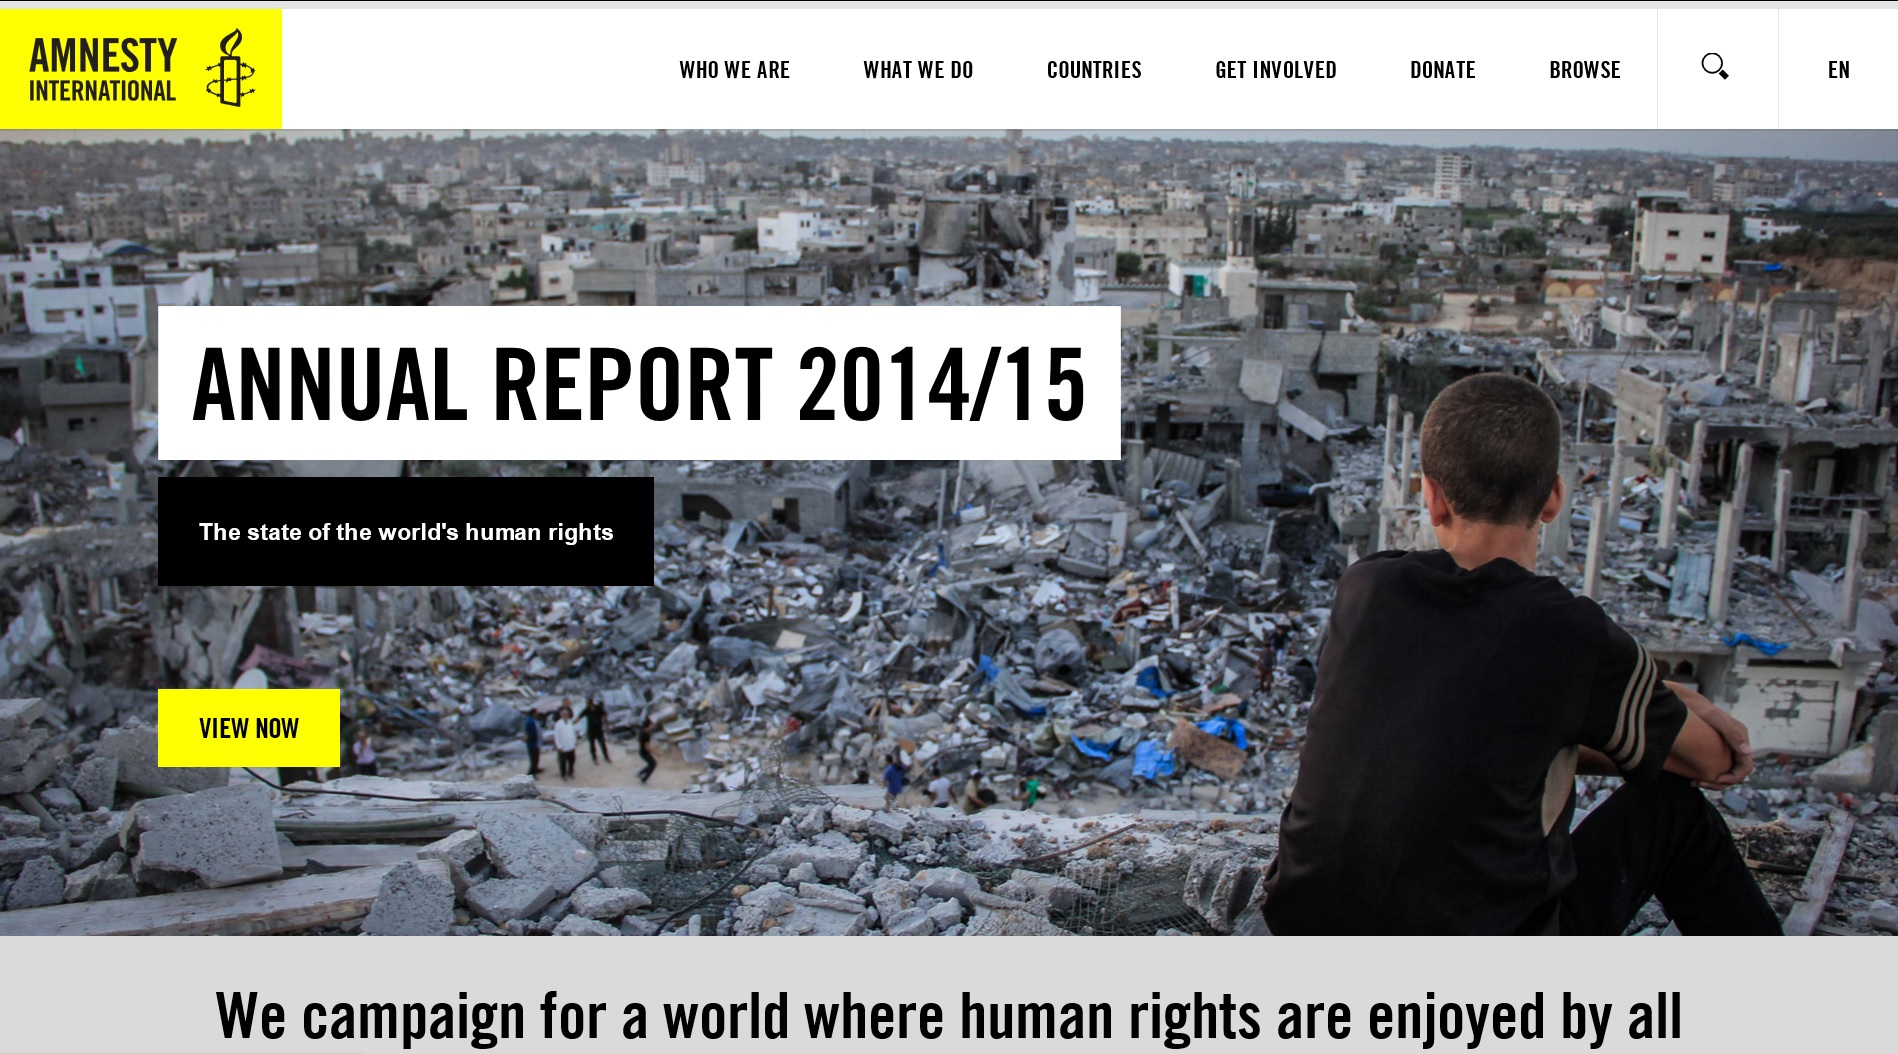 For the front page of its annual report, Amnesty International chose a photo of rubble in Gaza, after Israel